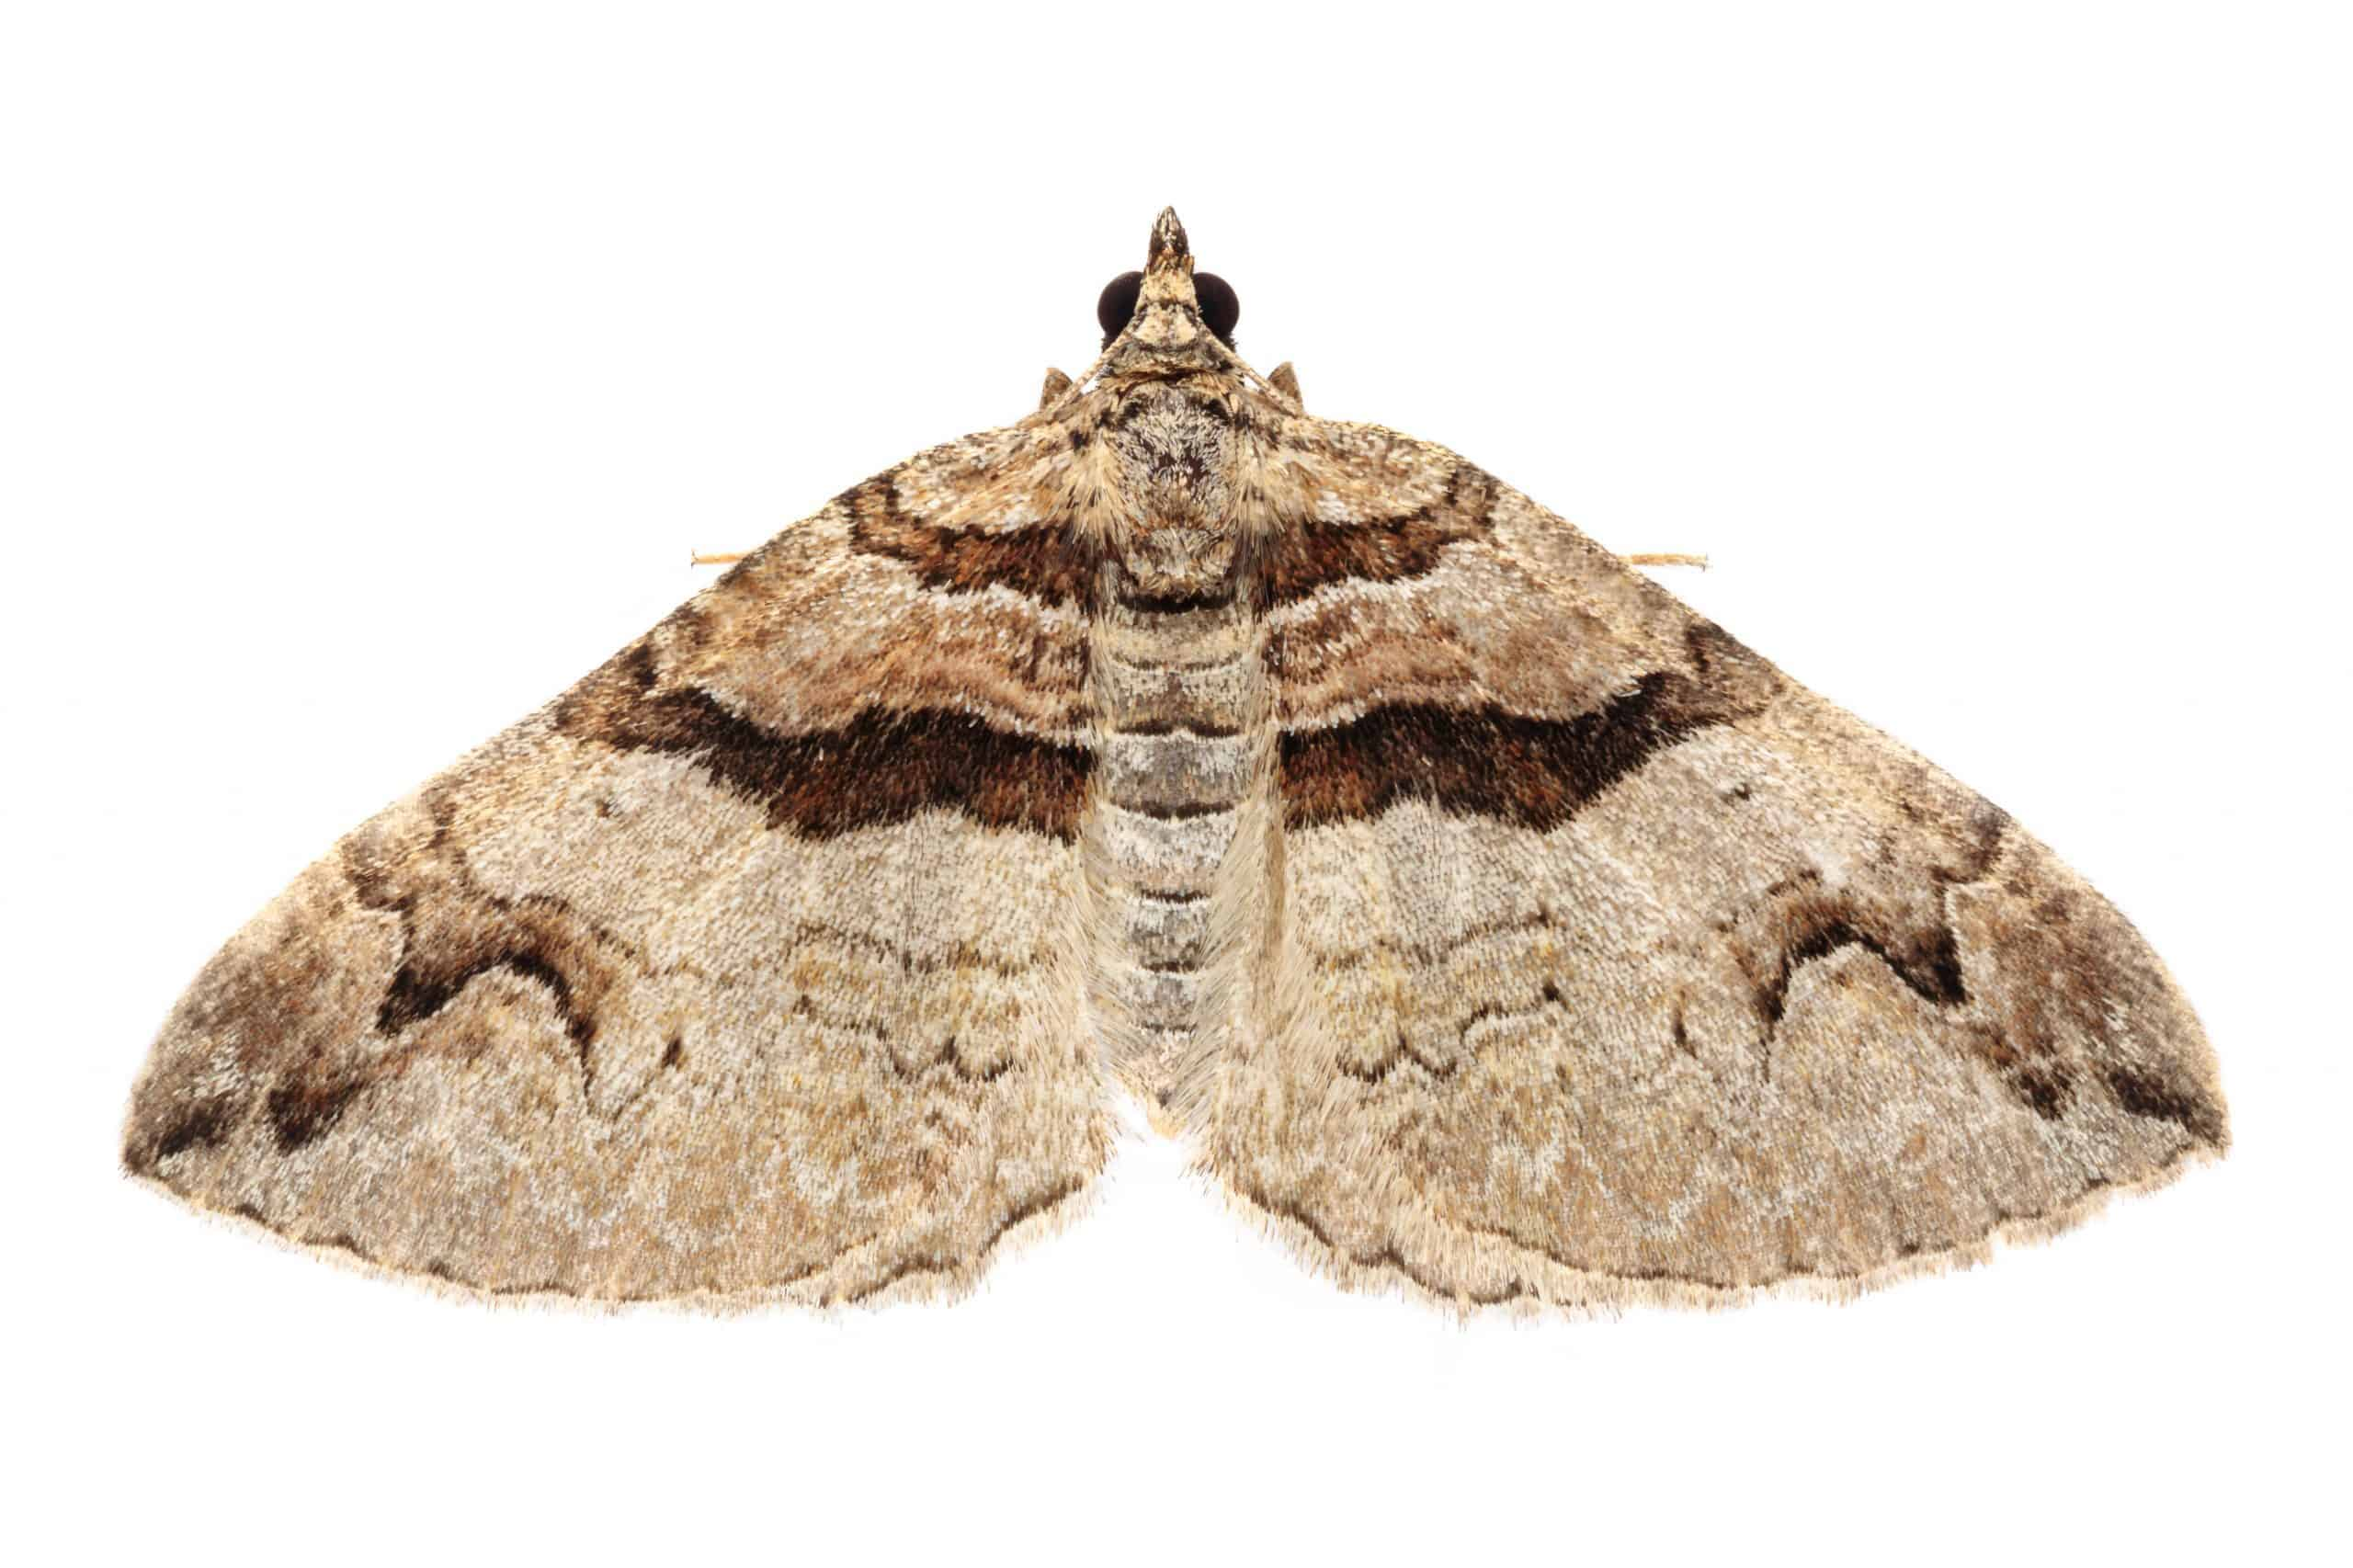 Barberry Carpet Moth (Pareulype berberata) photographed on a white backgroun in mobile field studio.